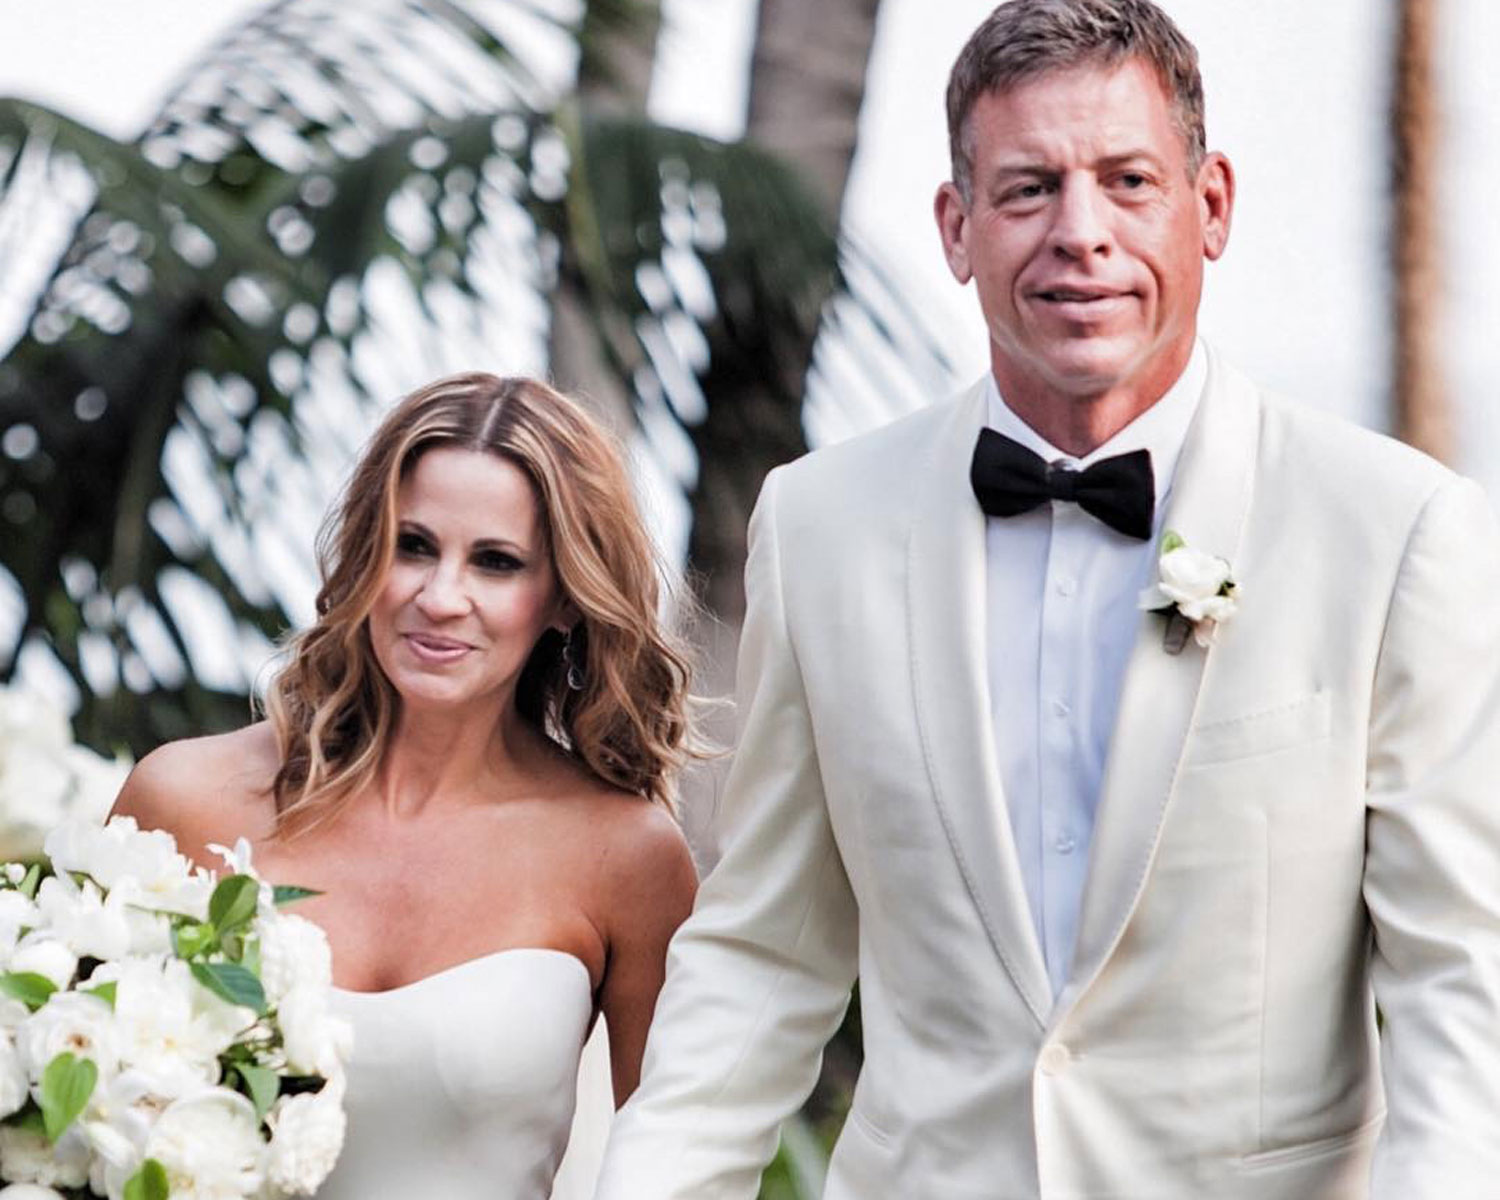 Troy Aikman Marries Love Of His Life In Intimate Beach Wedding